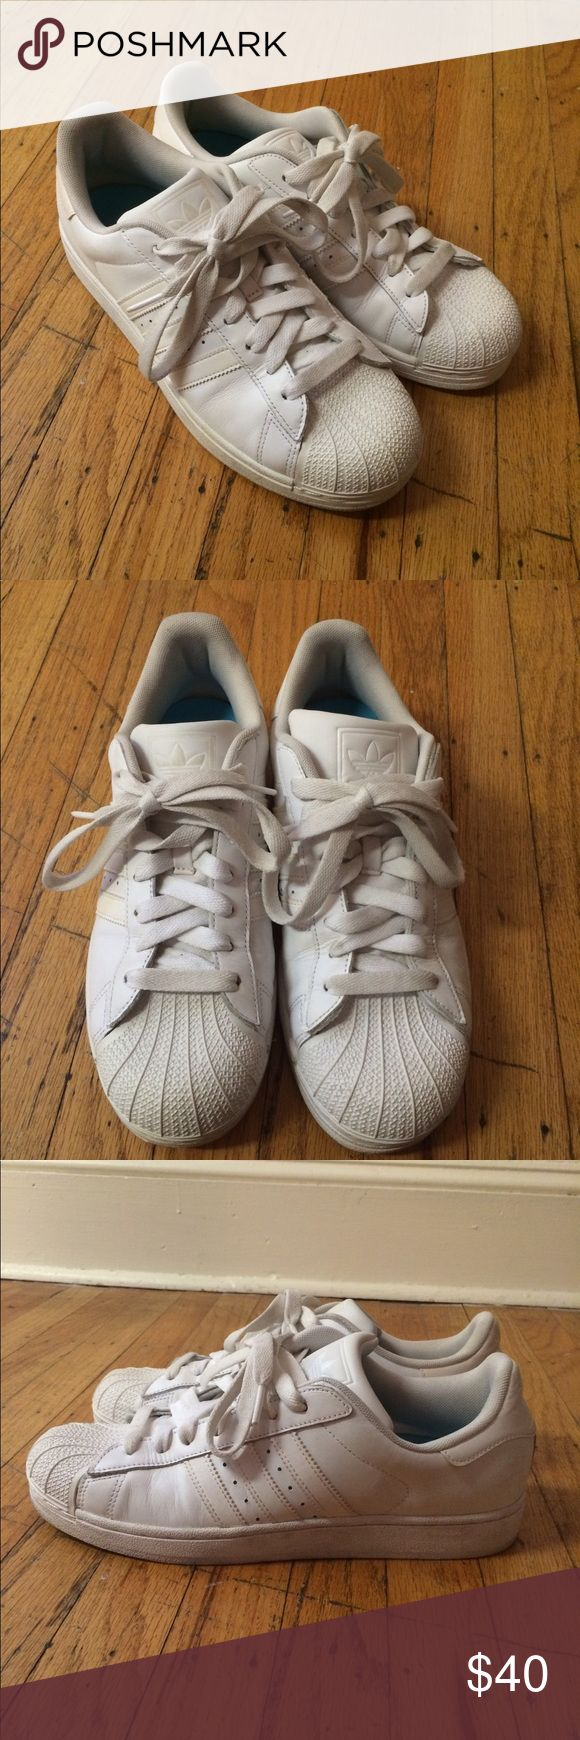 Adidas Stan Smith Superstar shell tops White Stan Smiths with shell top toes and white tonal stripes. Some wear and creasing in the leather but still in good condition. Gel insole included. Adidas Shoes Sneakers